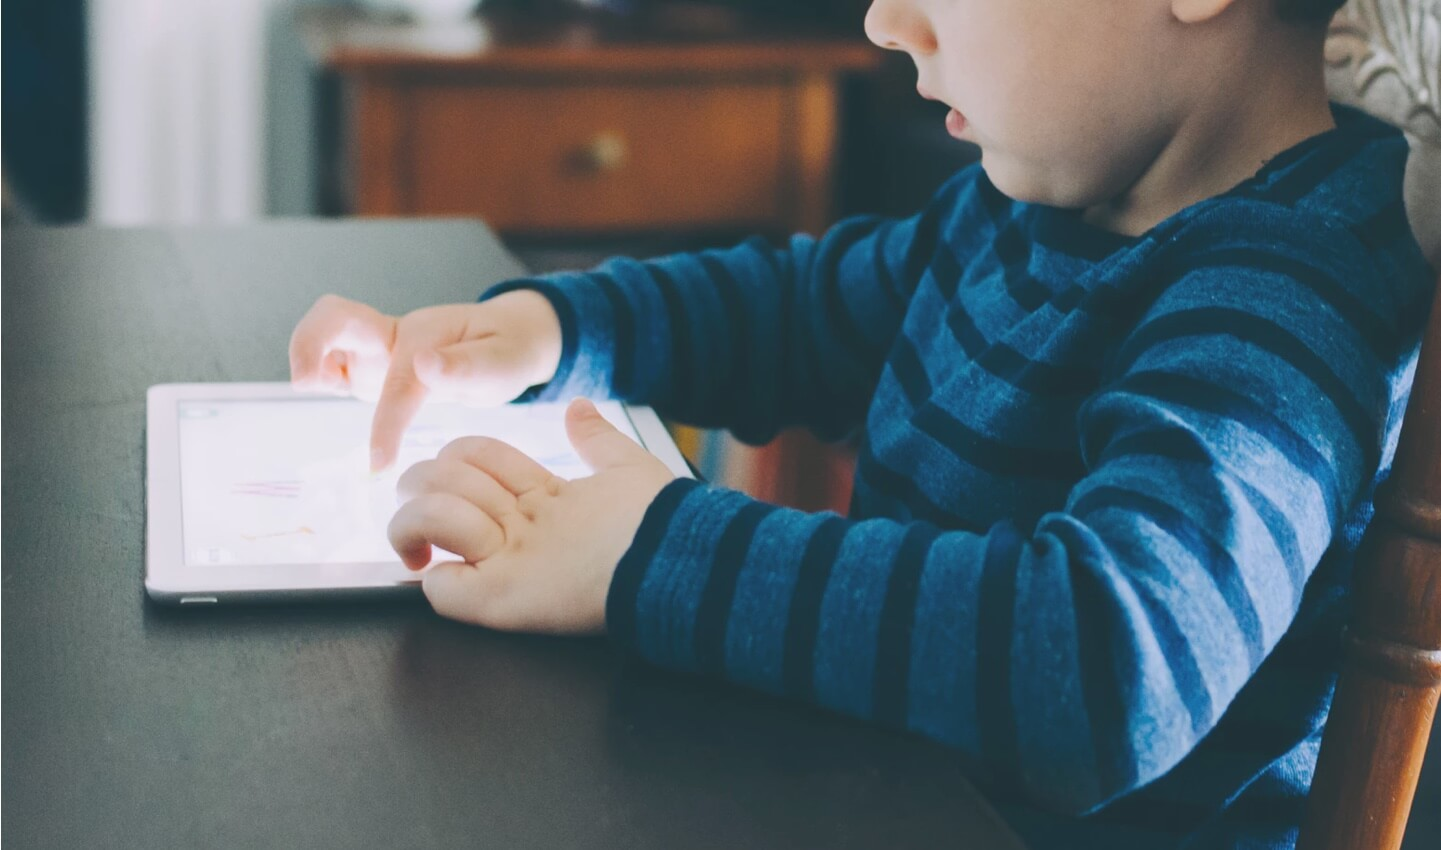 developing an educational app for kids